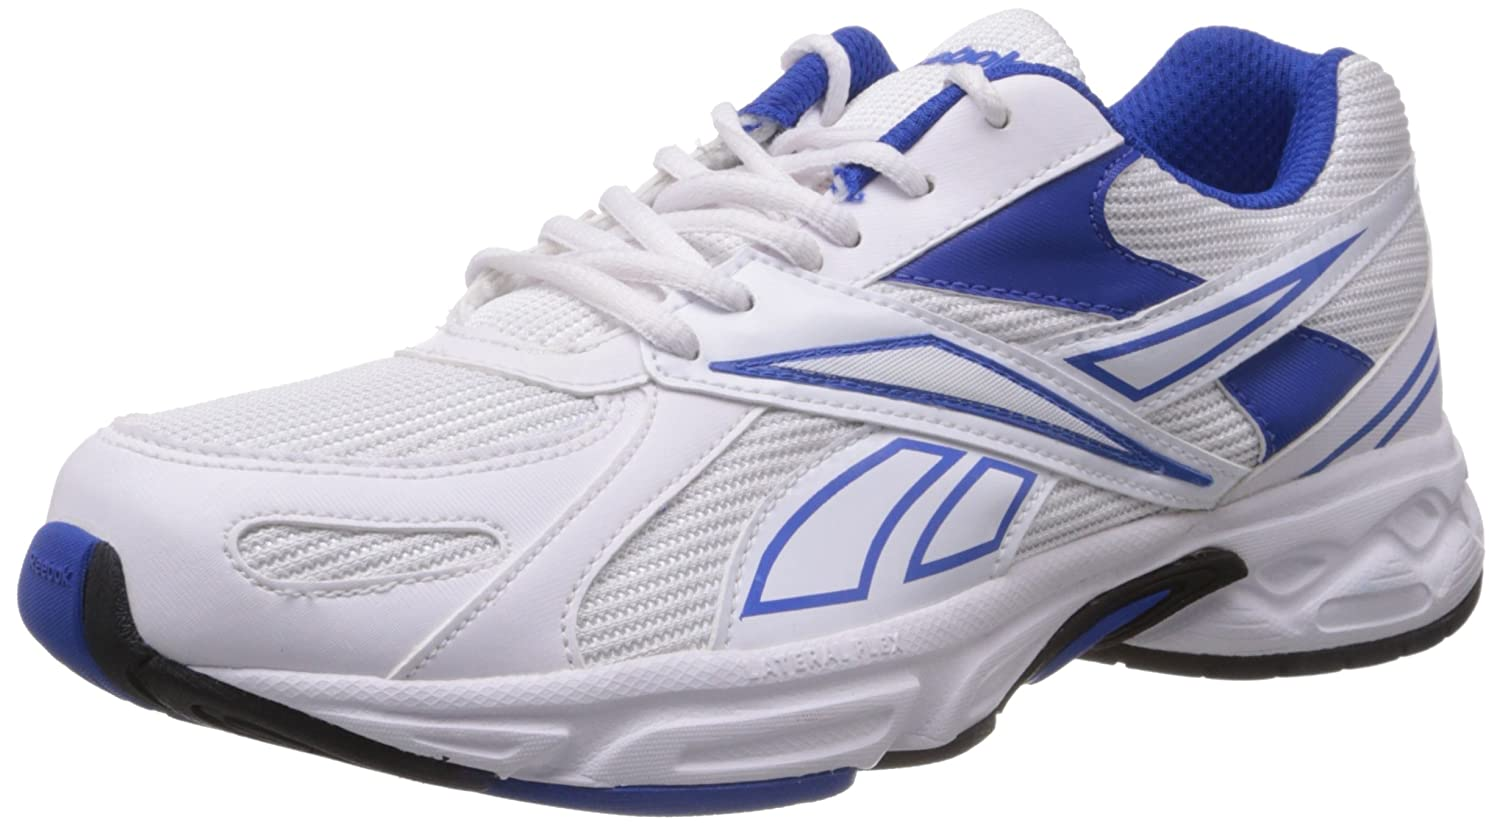 Cheap reebok shoes all model with price Buy Online >OFF33 ...